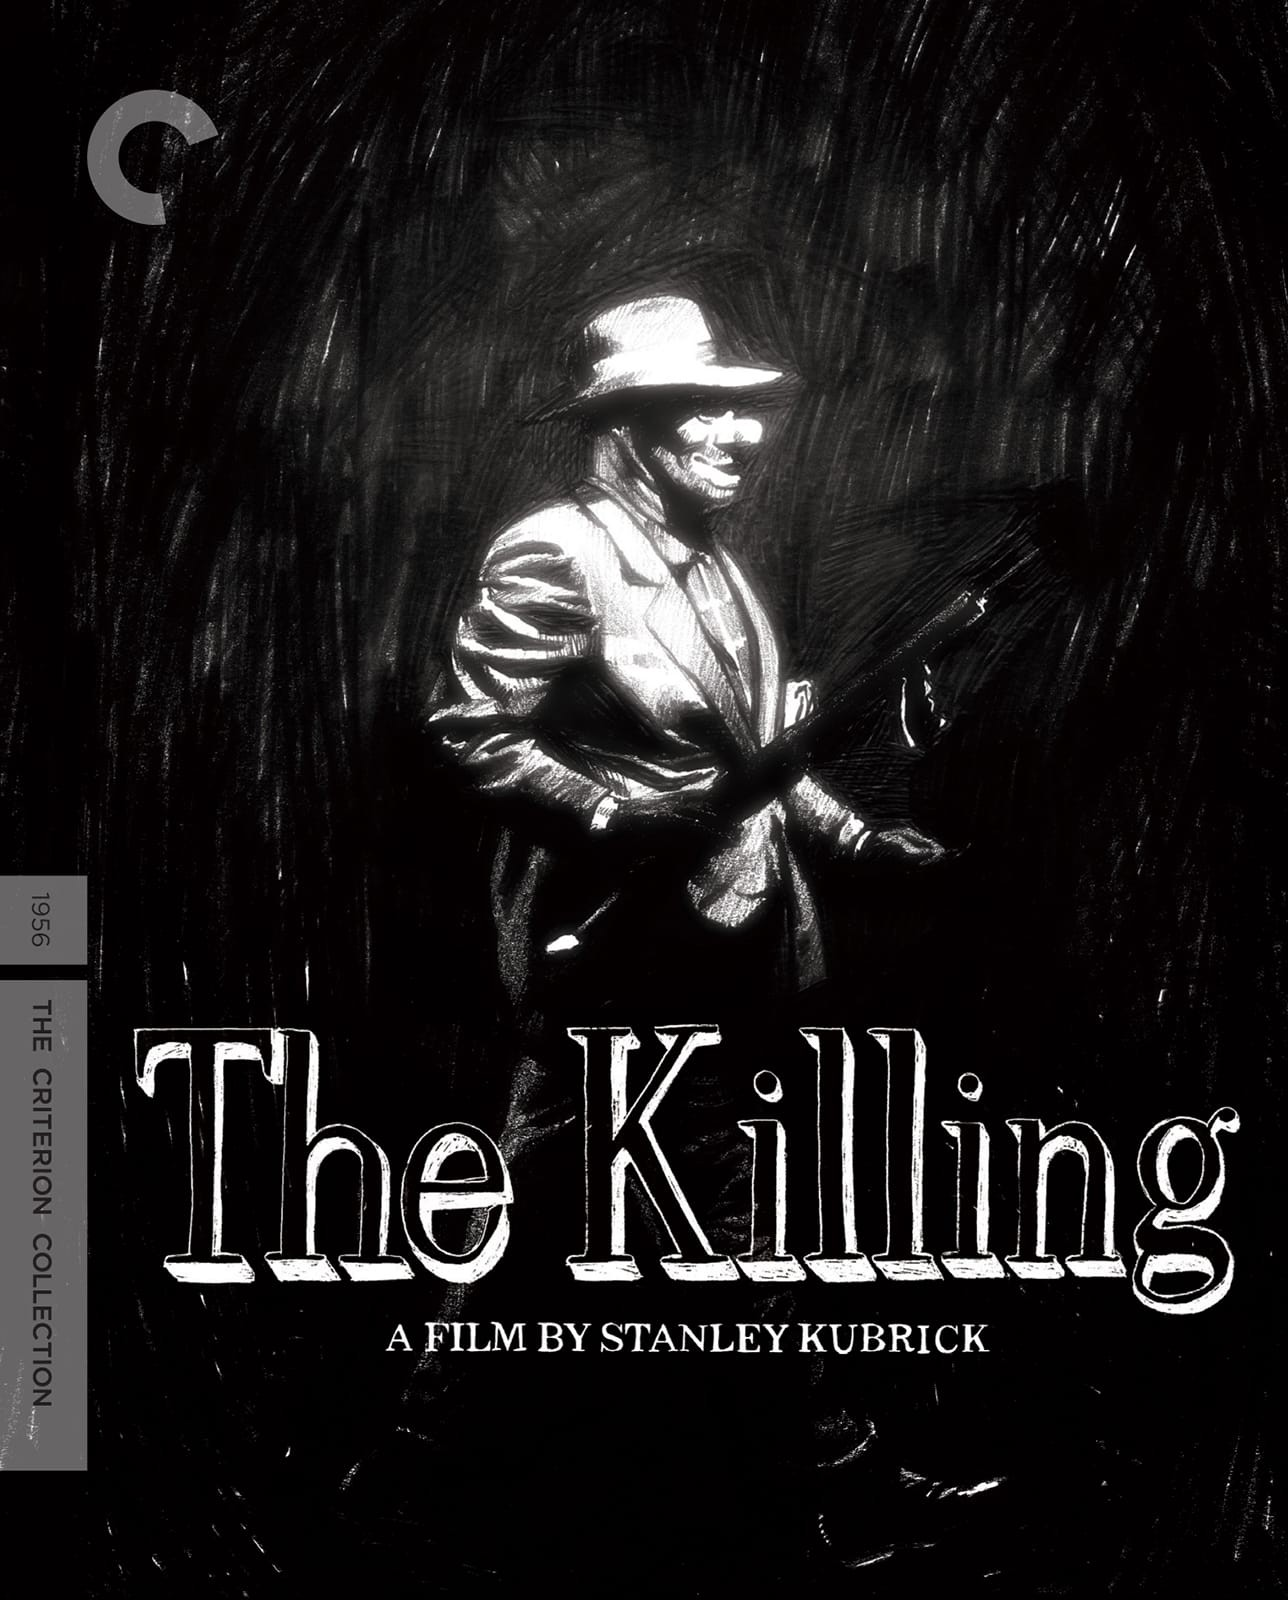 Image result for the killing criterion poster